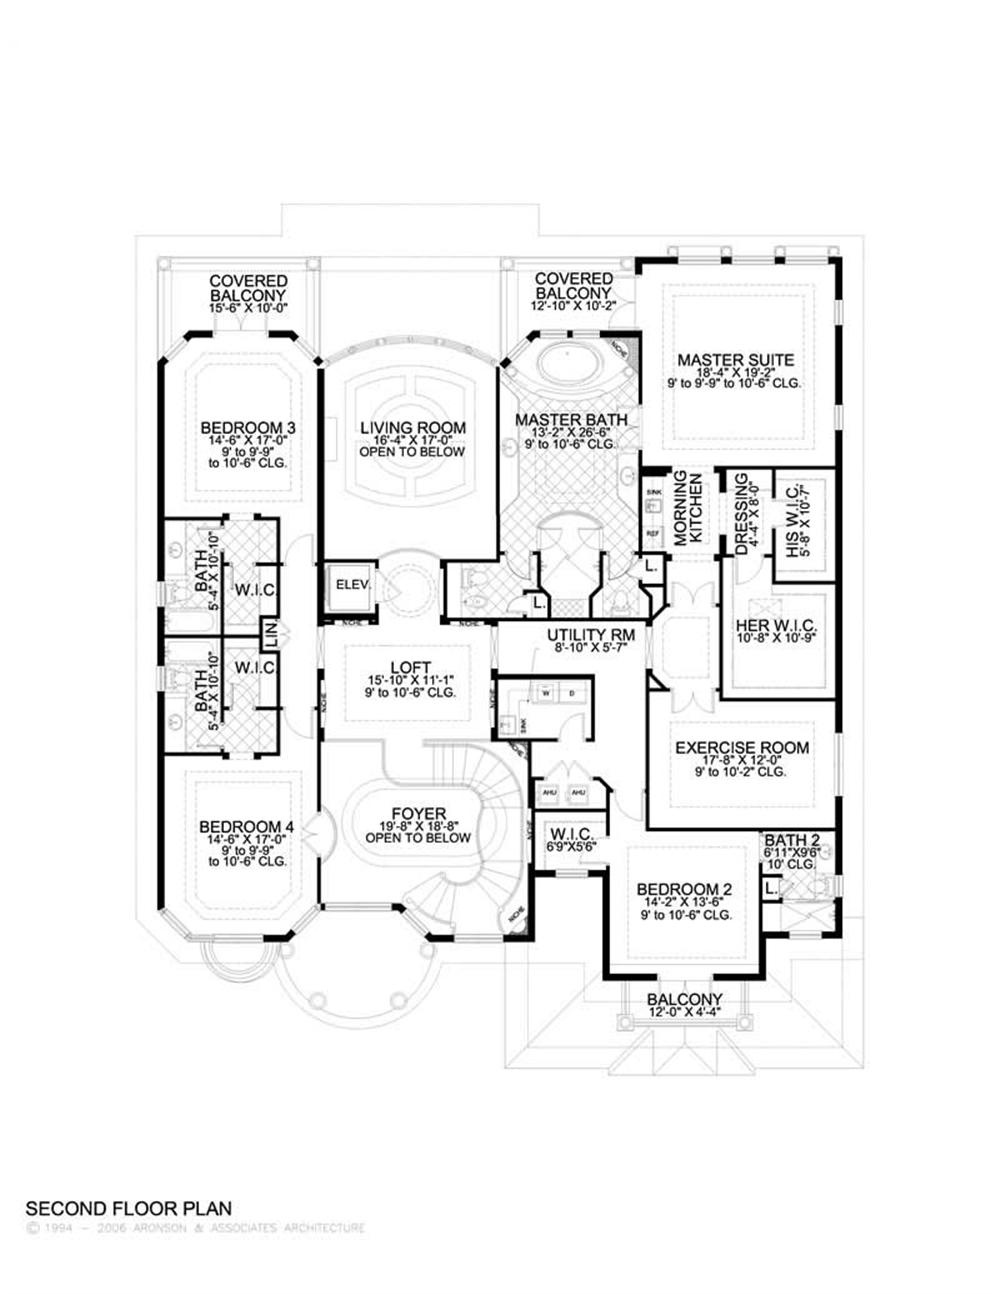 HOME PLAN OF AA